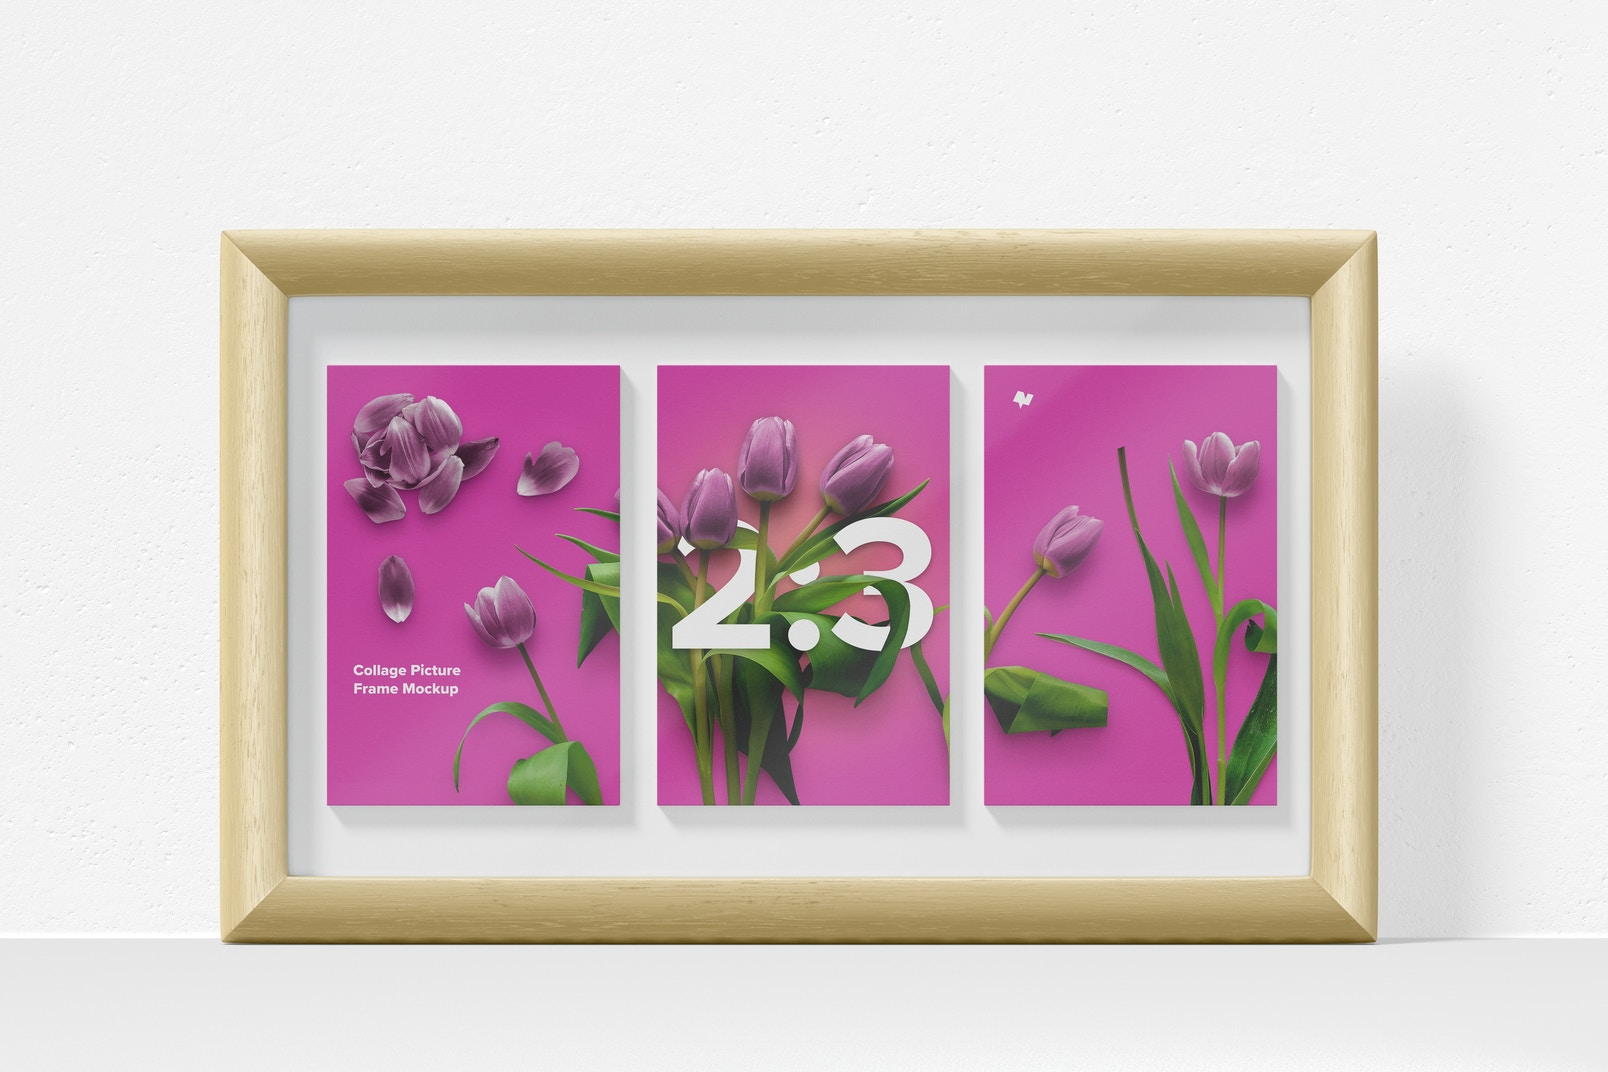 2:3 Collage Picture Frame Mockup